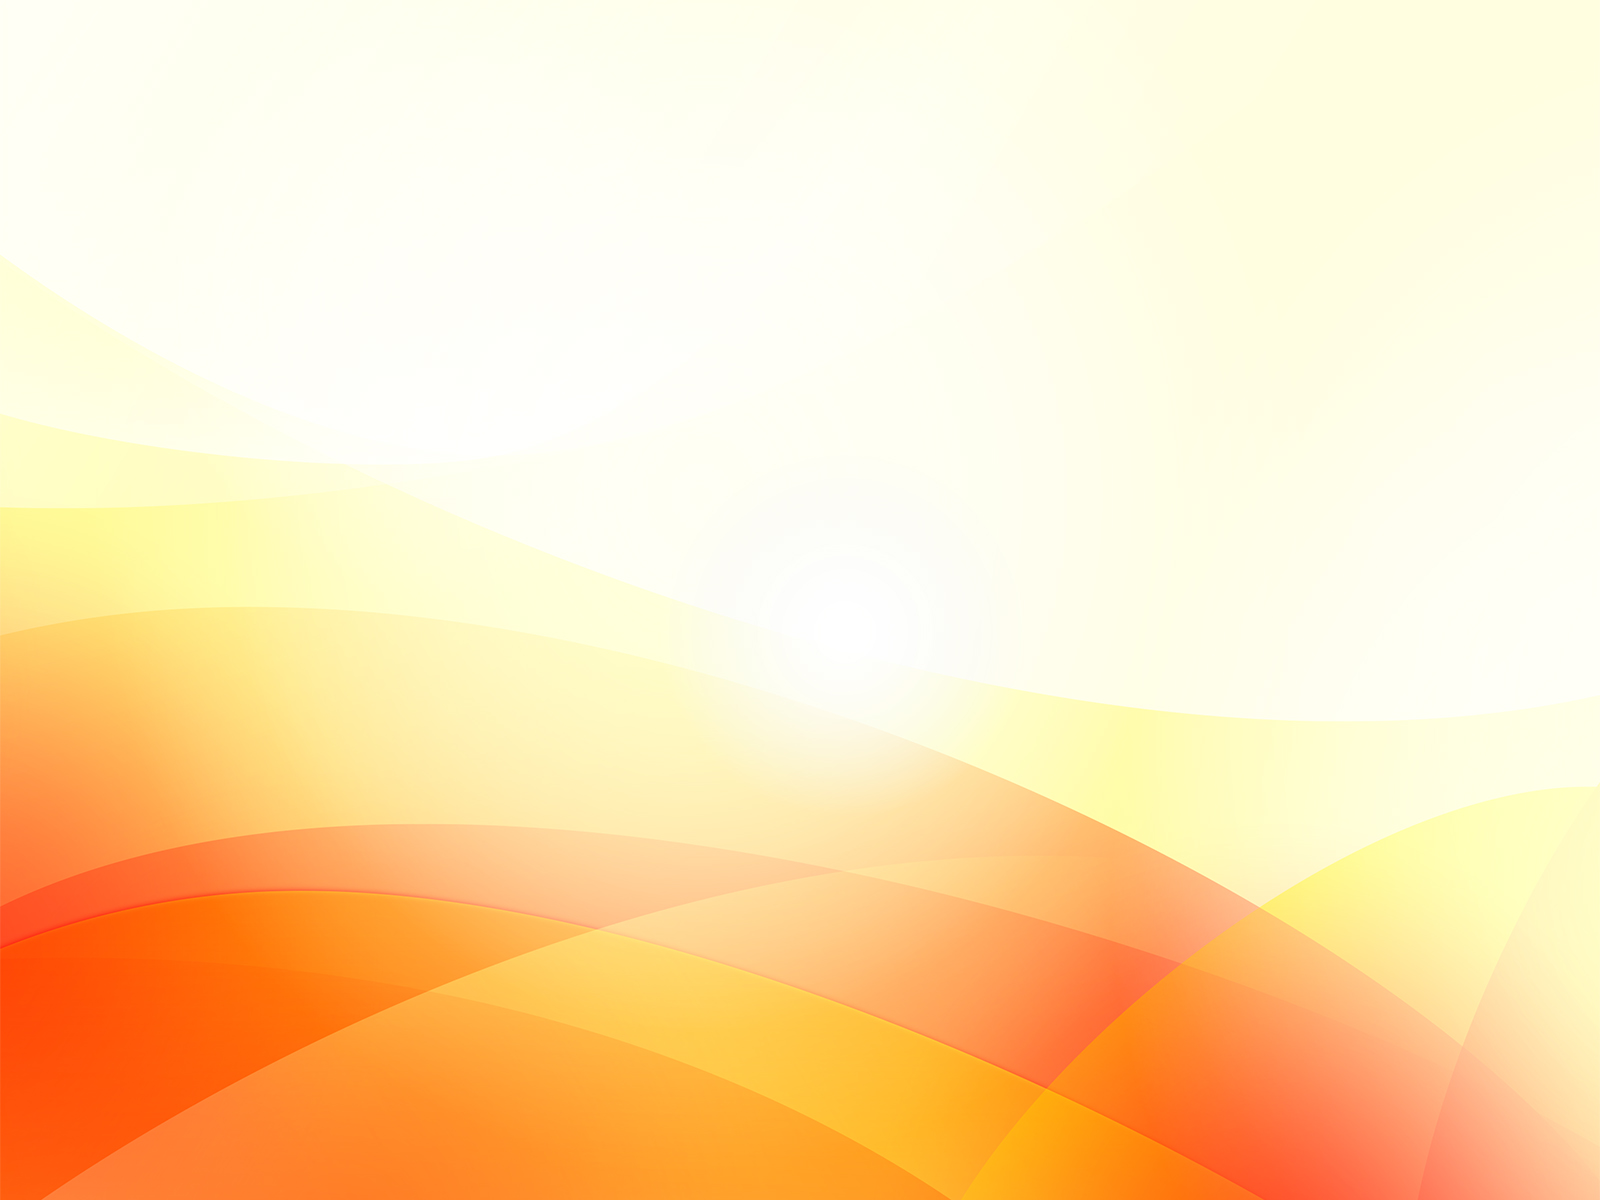 Orange Waves Powerpoint Templates